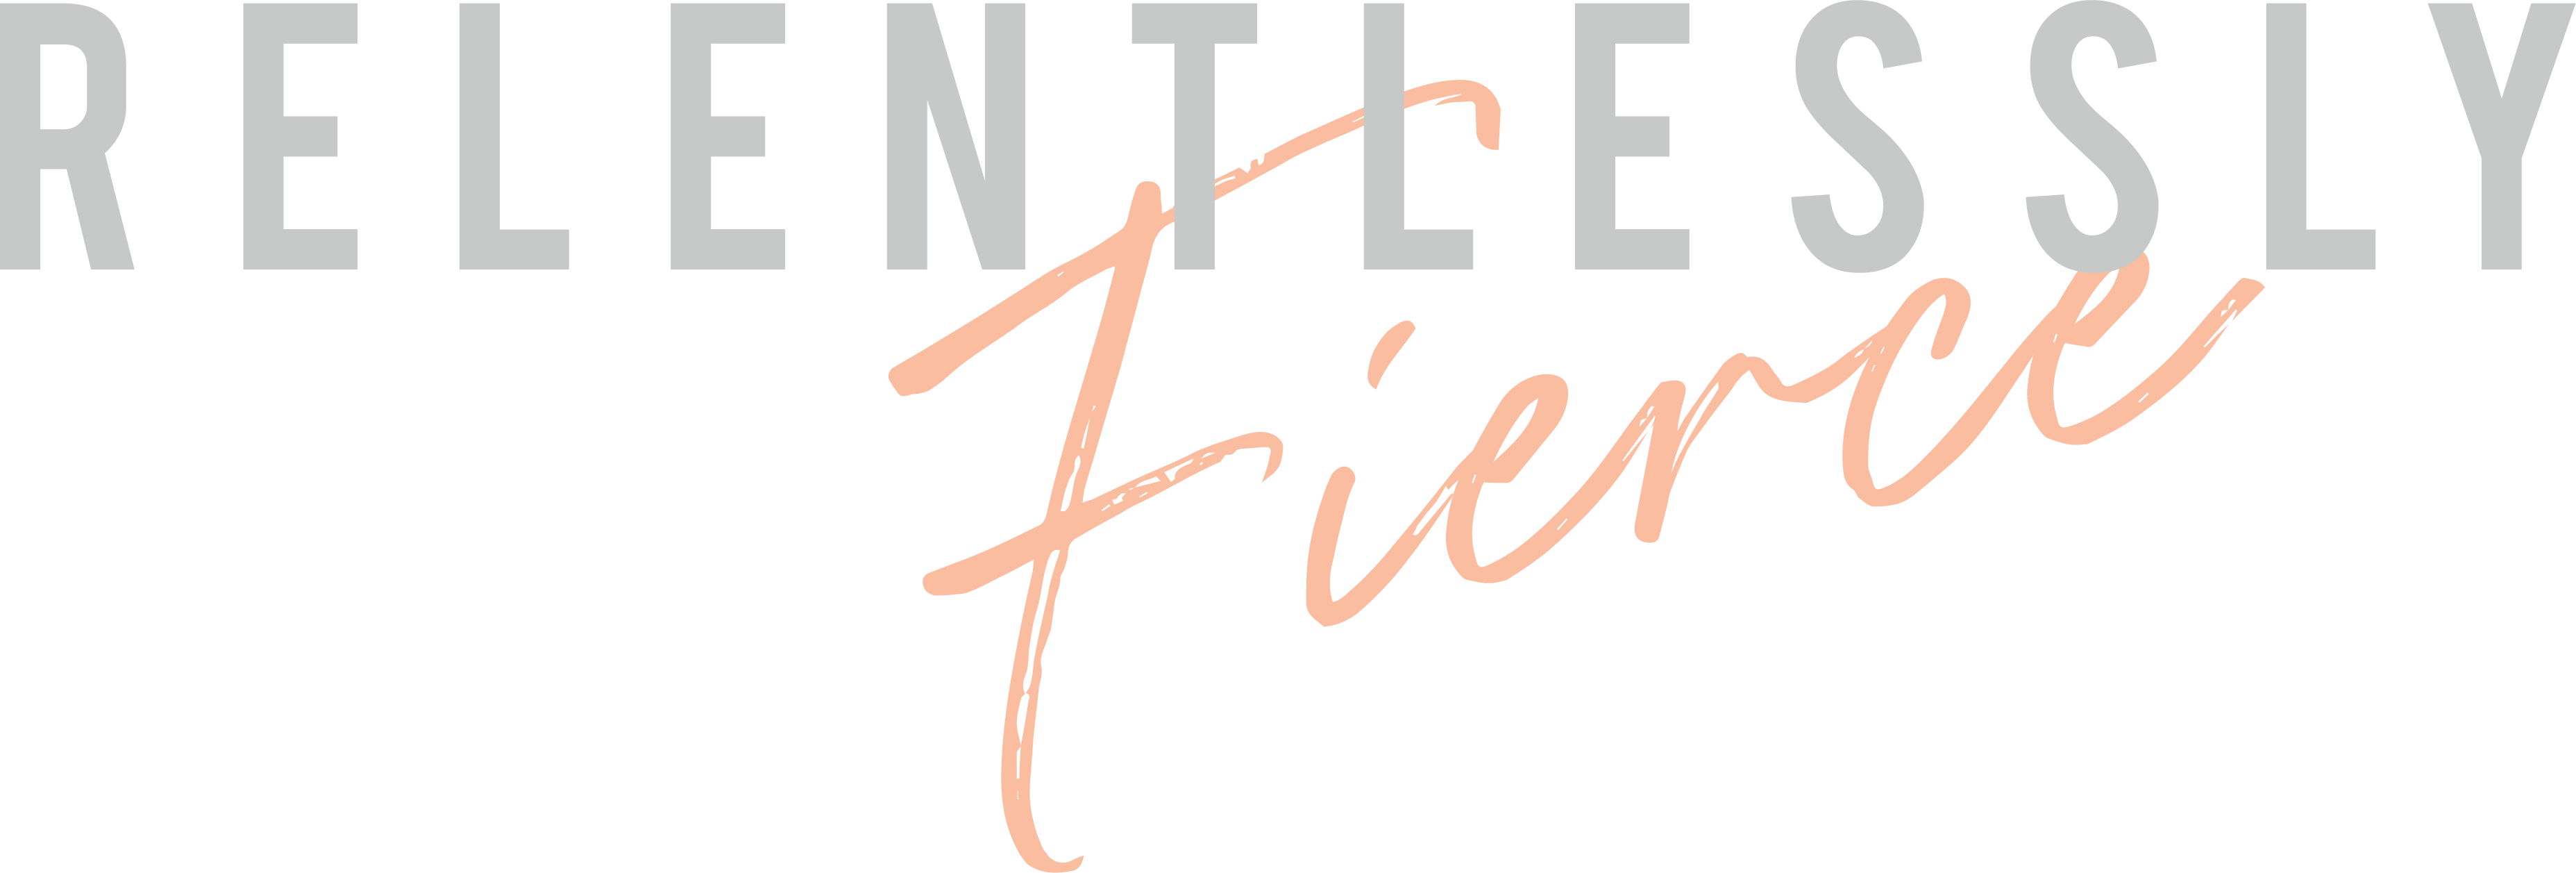 Nine Line Apparel - Veteran Owned and Operated Apparel Company cd4ffcb13